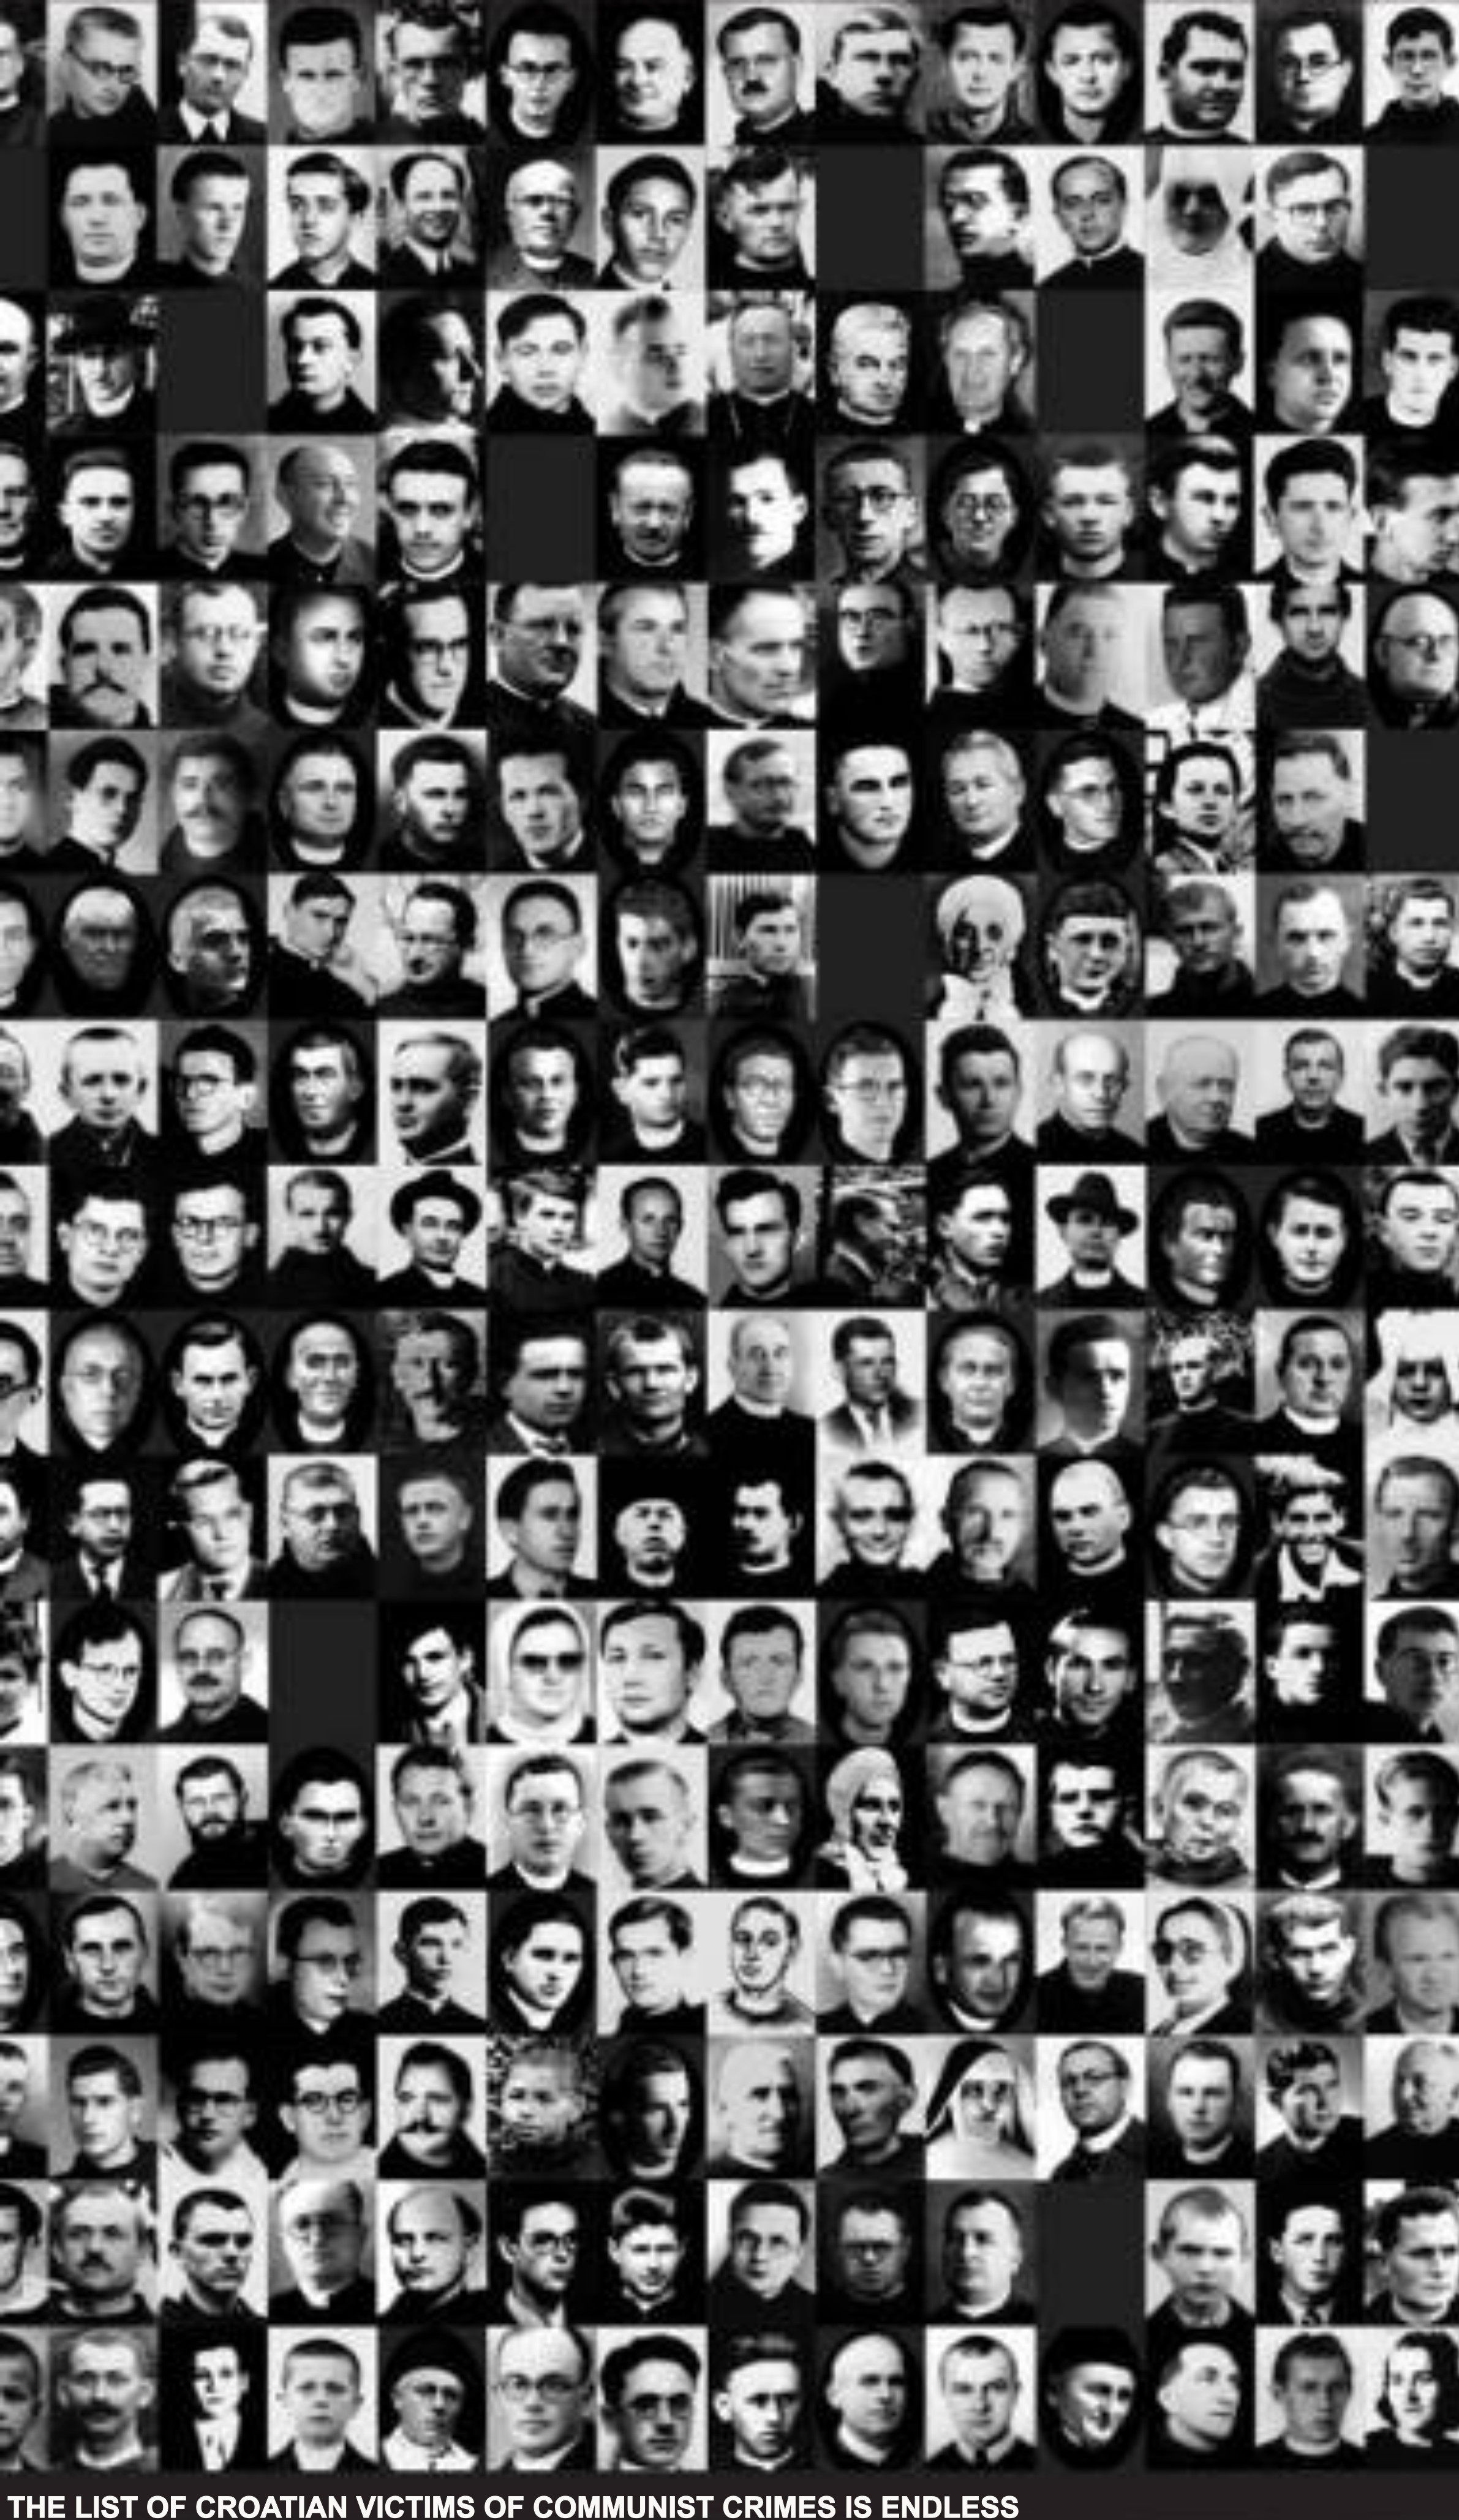 https://inavukic.files.wordpress.com/2019/05/croatian-communist-crimes-victims.jpg